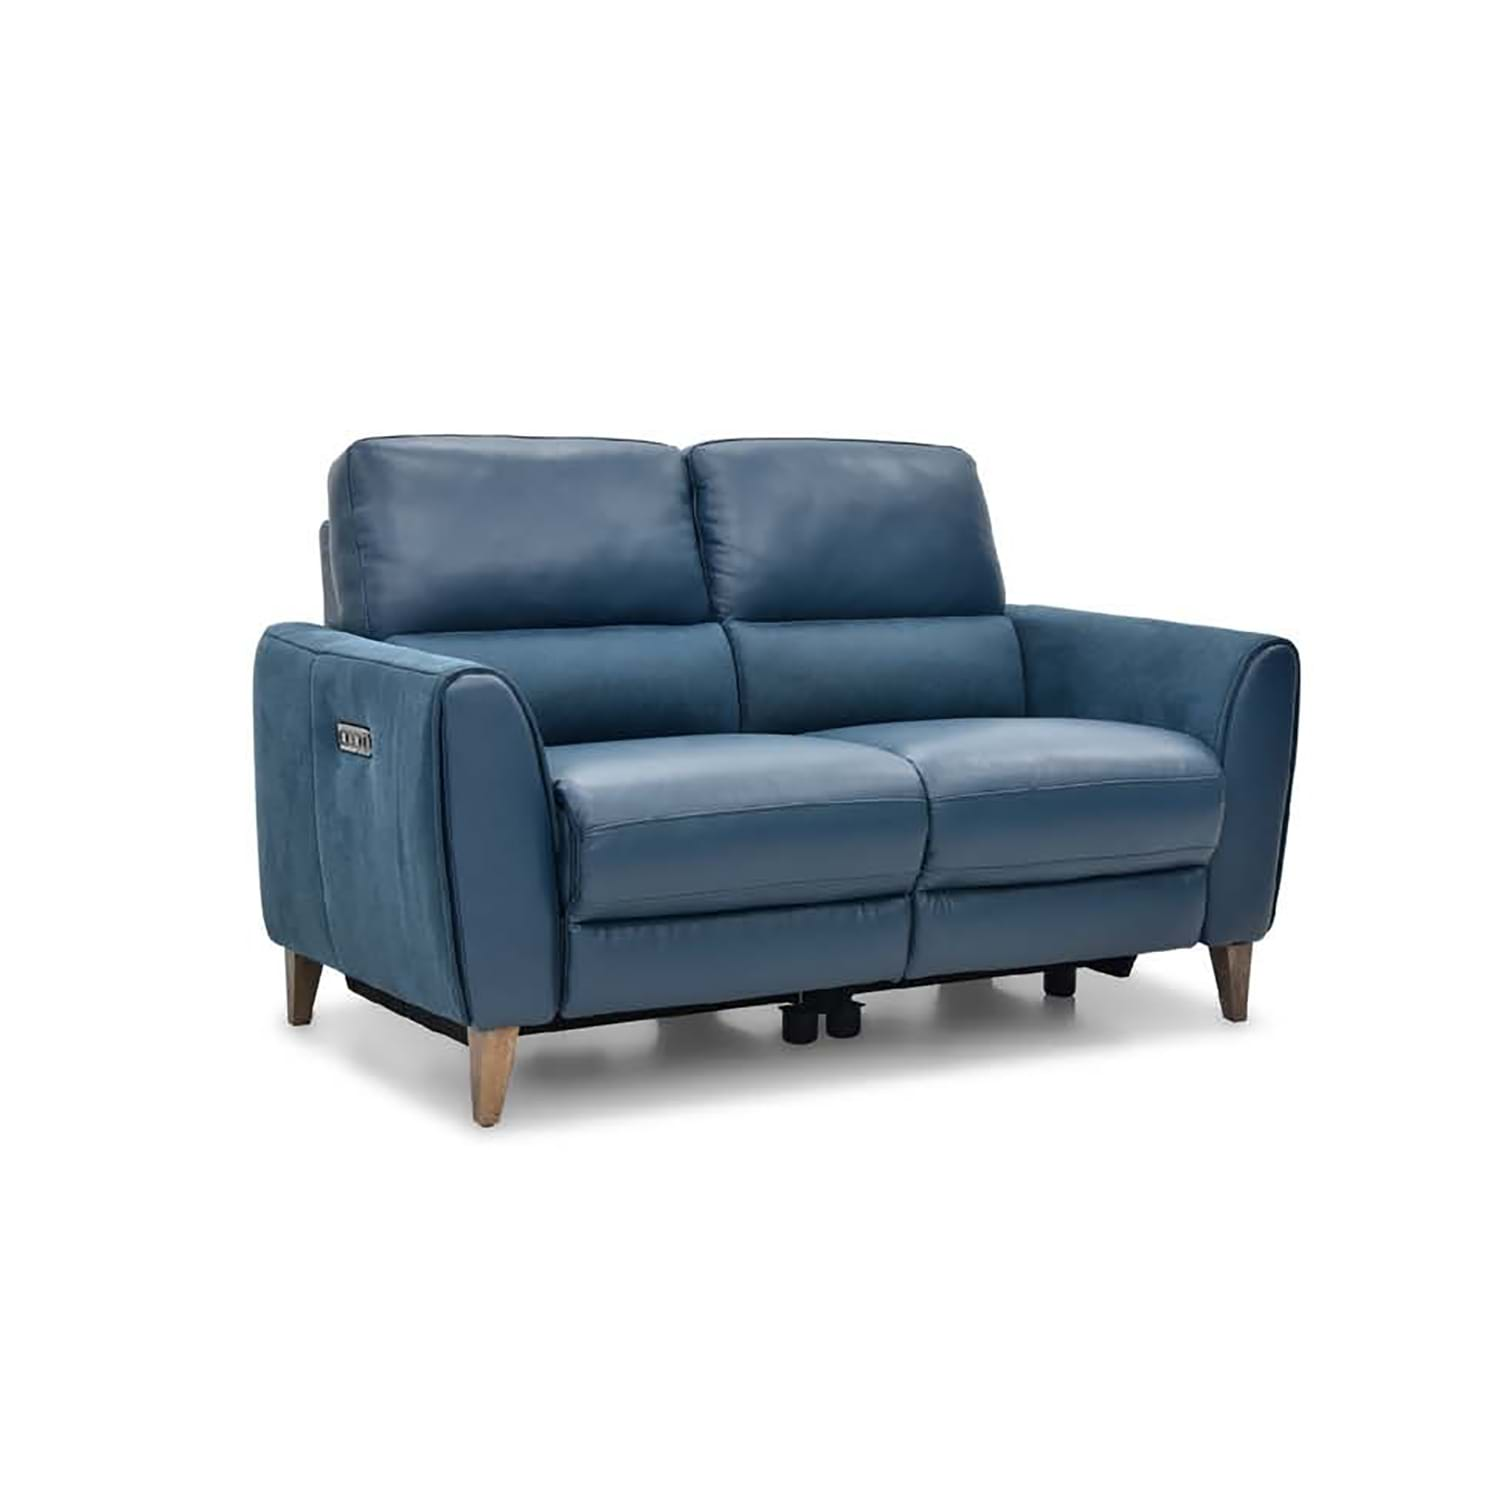 Casa Fraser 2 Seater Power Recliner Leather Sofa | Compare